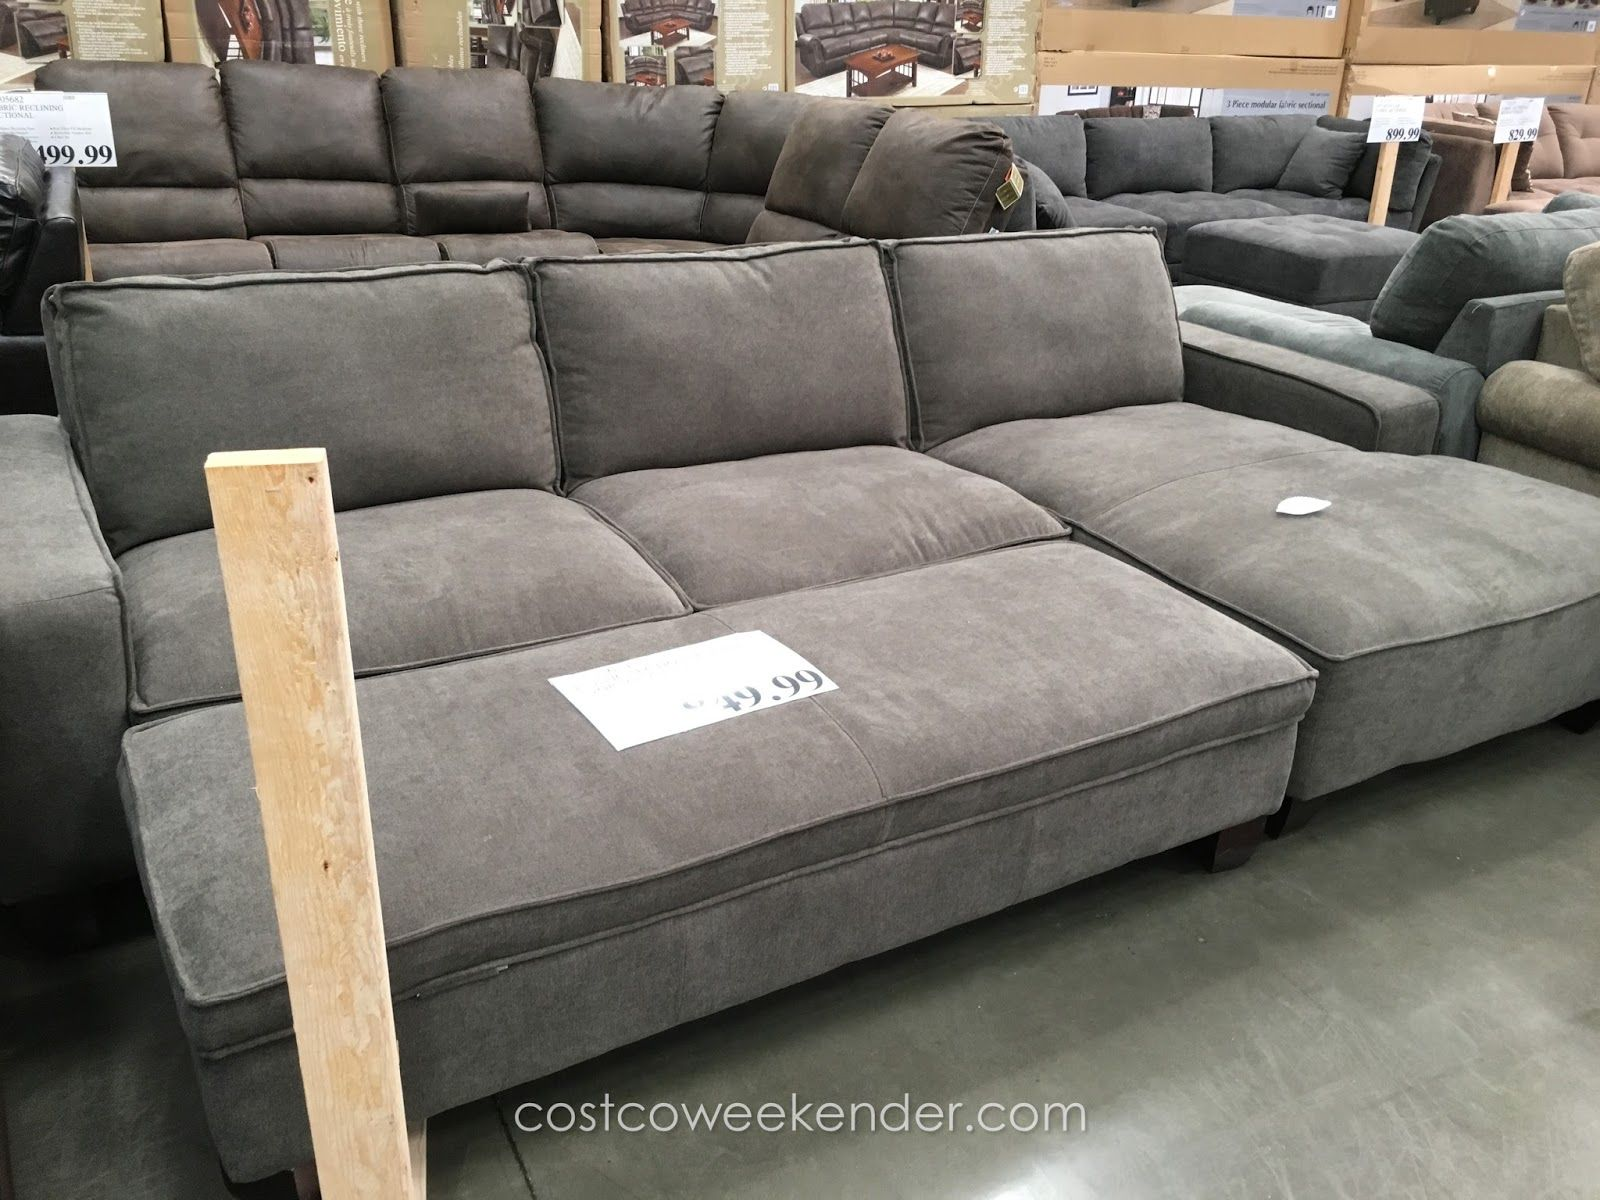 Cute Sectional With Ottoman And Chaise Chaise Source